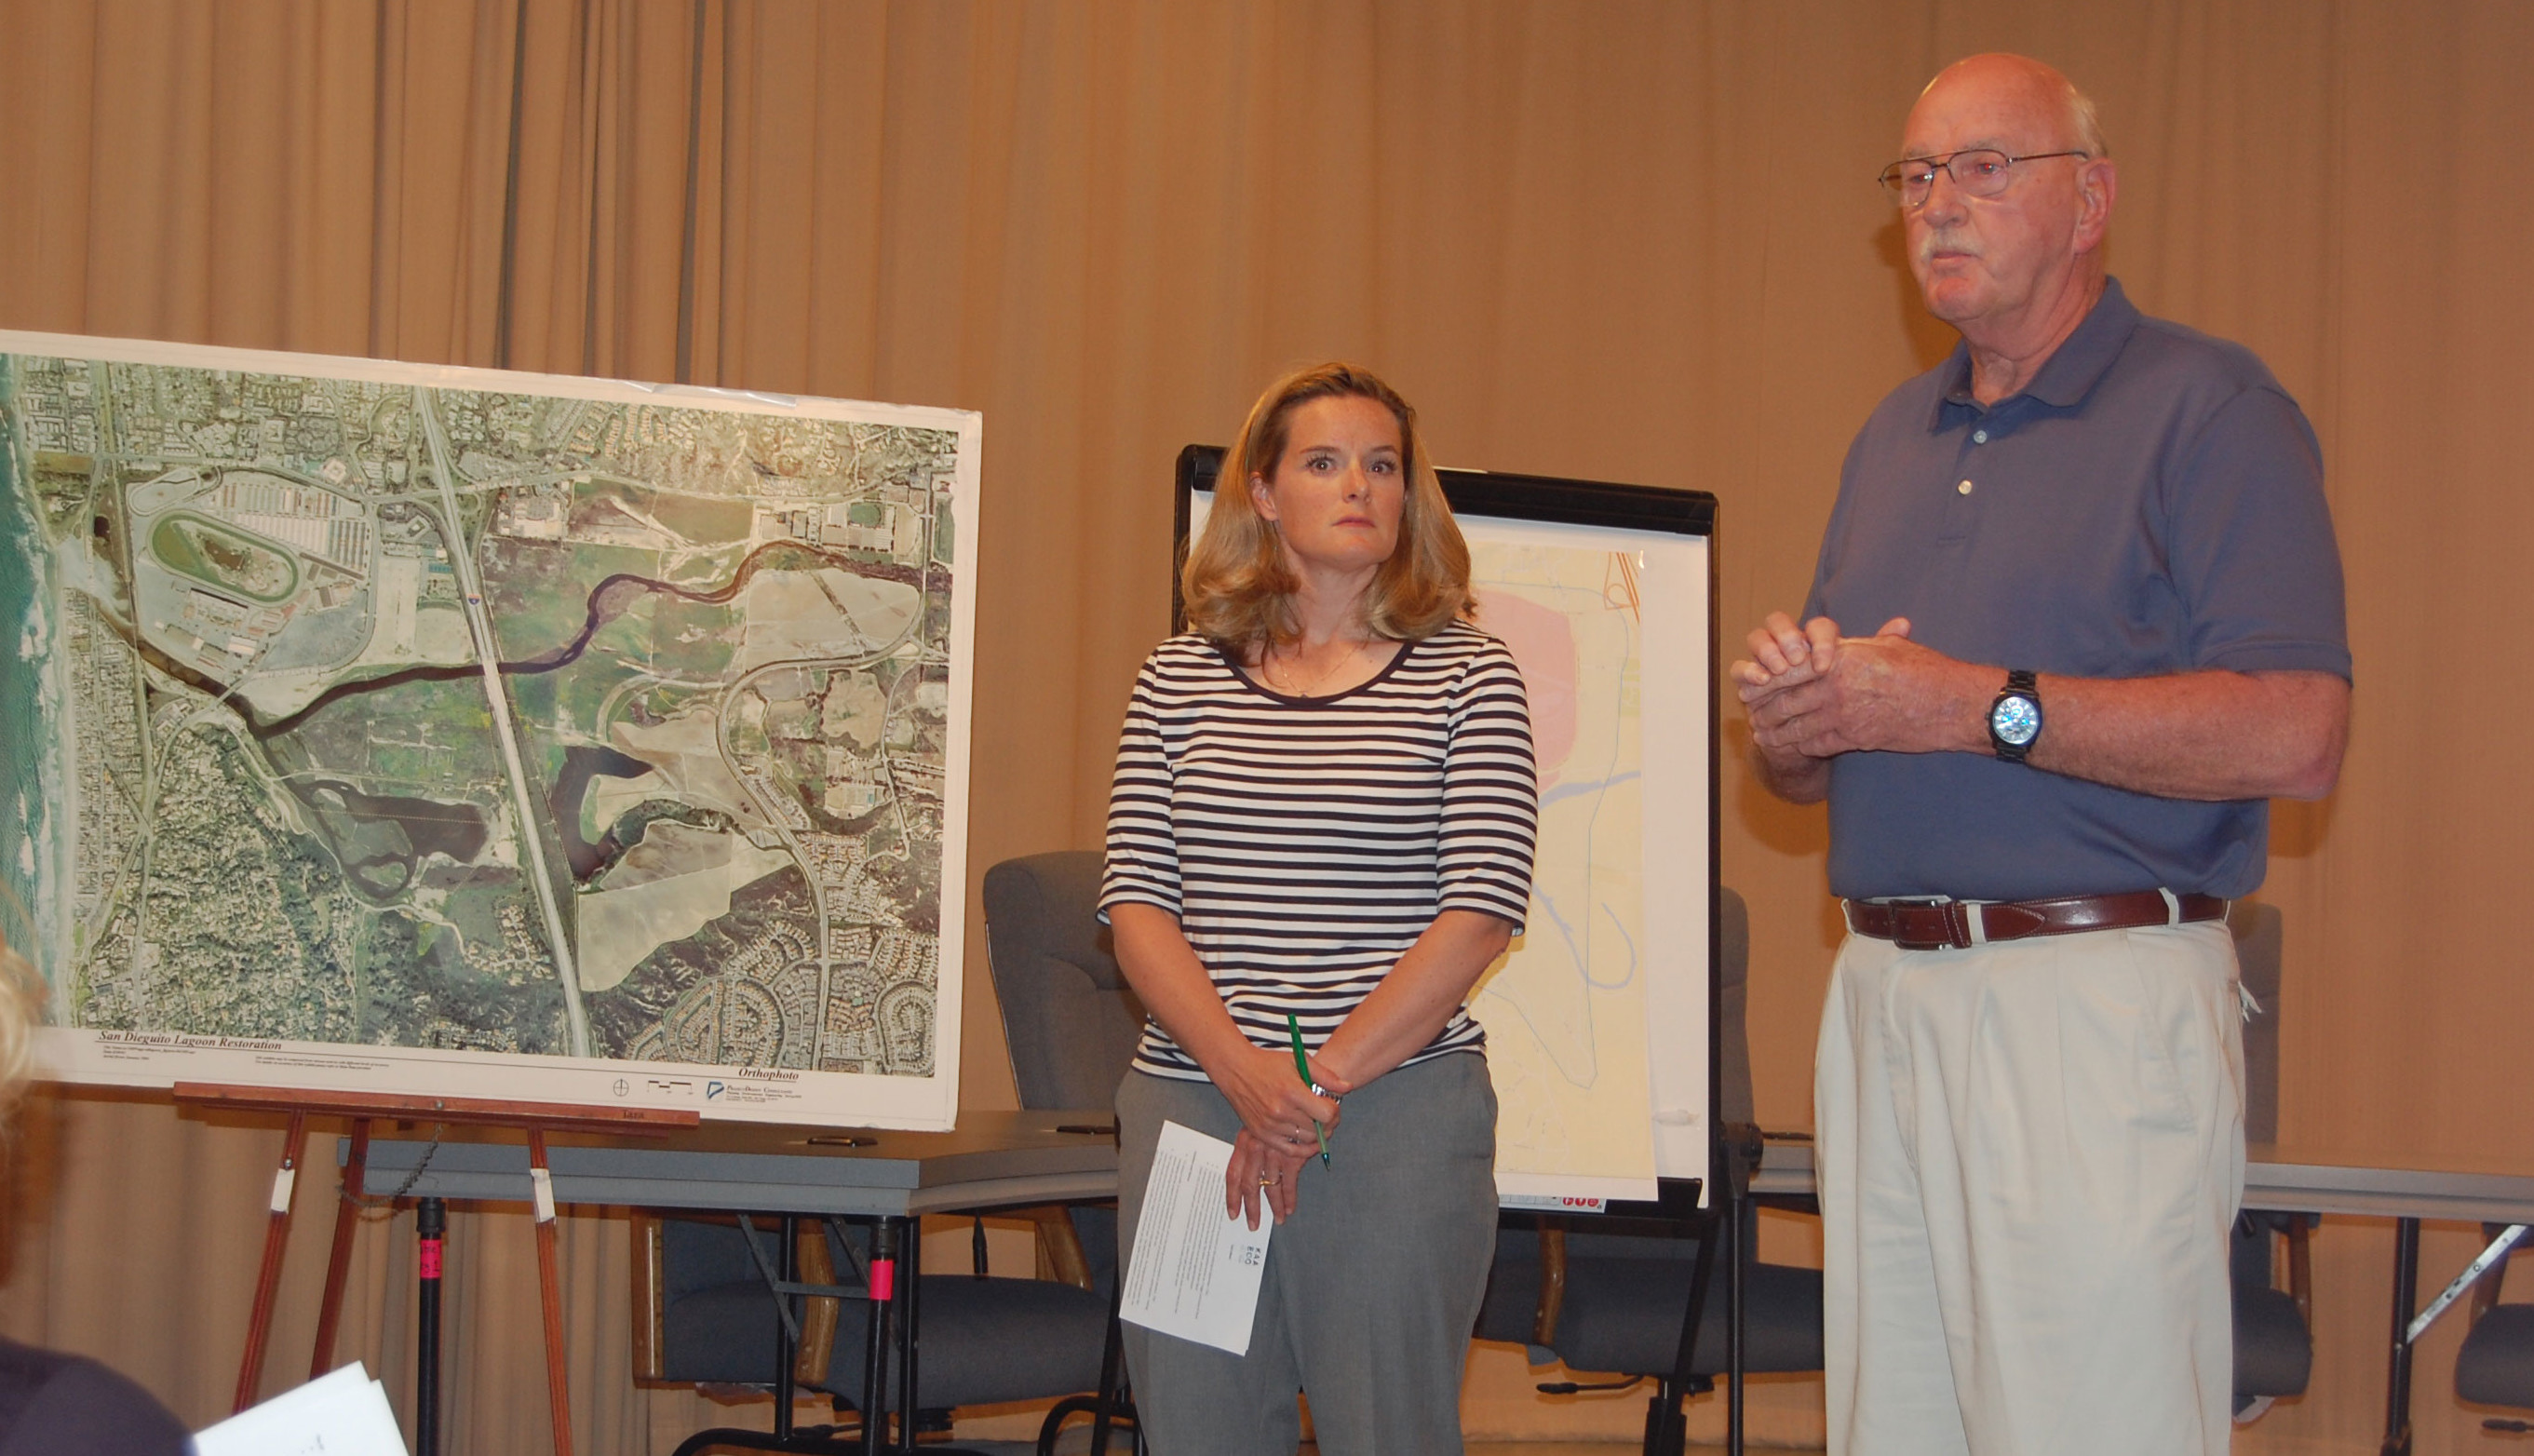 Julie Coleman, with Kaaboo producer The Madison Companies, and Pat Kerins, chief of security for the Del Mar Fairgrounds, address the concerns of Del Mar residents during an Aug. 3 meeting to discuss impacts from the three-day event scheduled to begin Sept. 18 at the fairgrounds Photo by Bianca Kaplanek